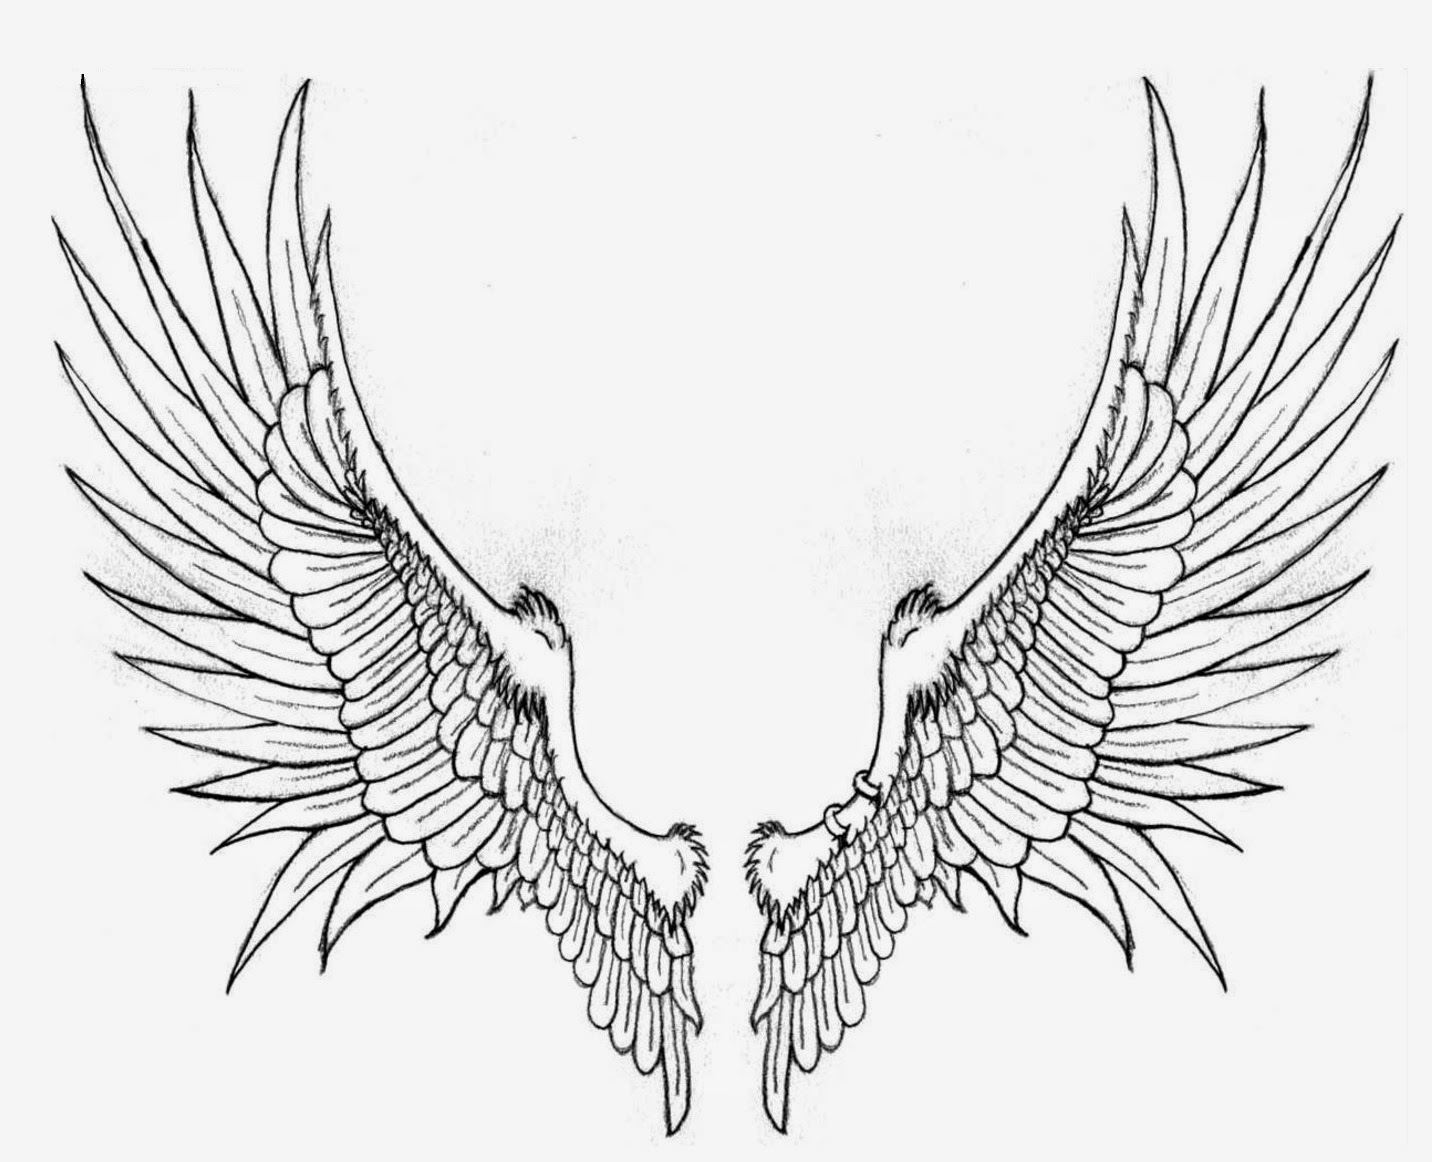 Superb image intended for angel wing stencil printable